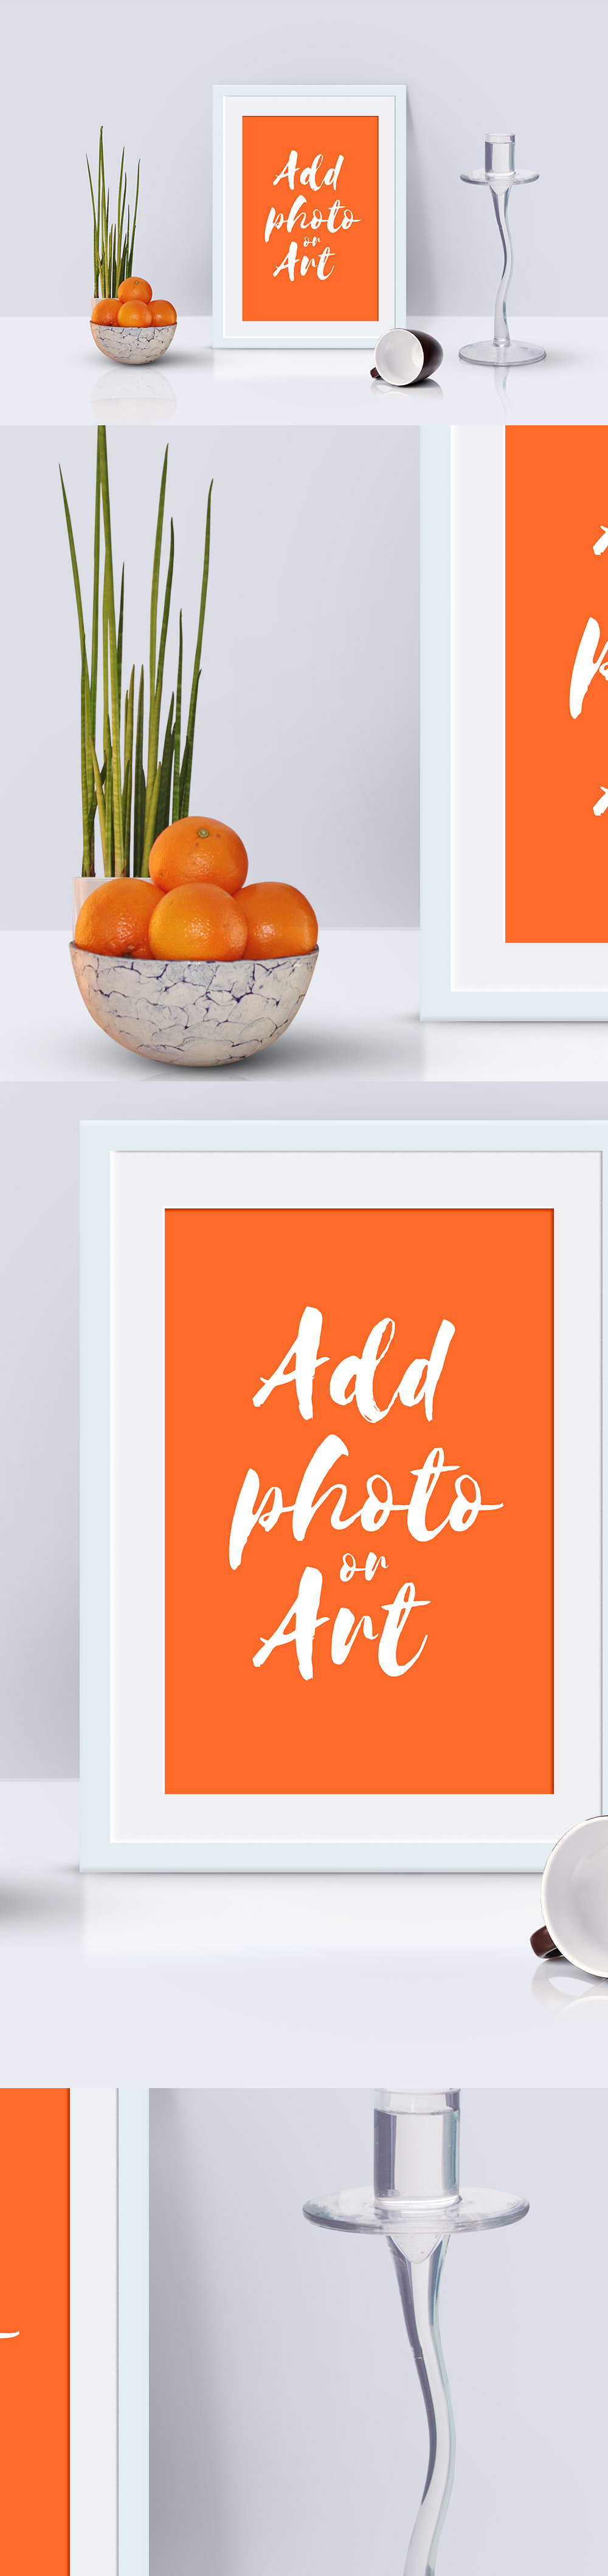 Photo Frame-Scene Mockup PSD